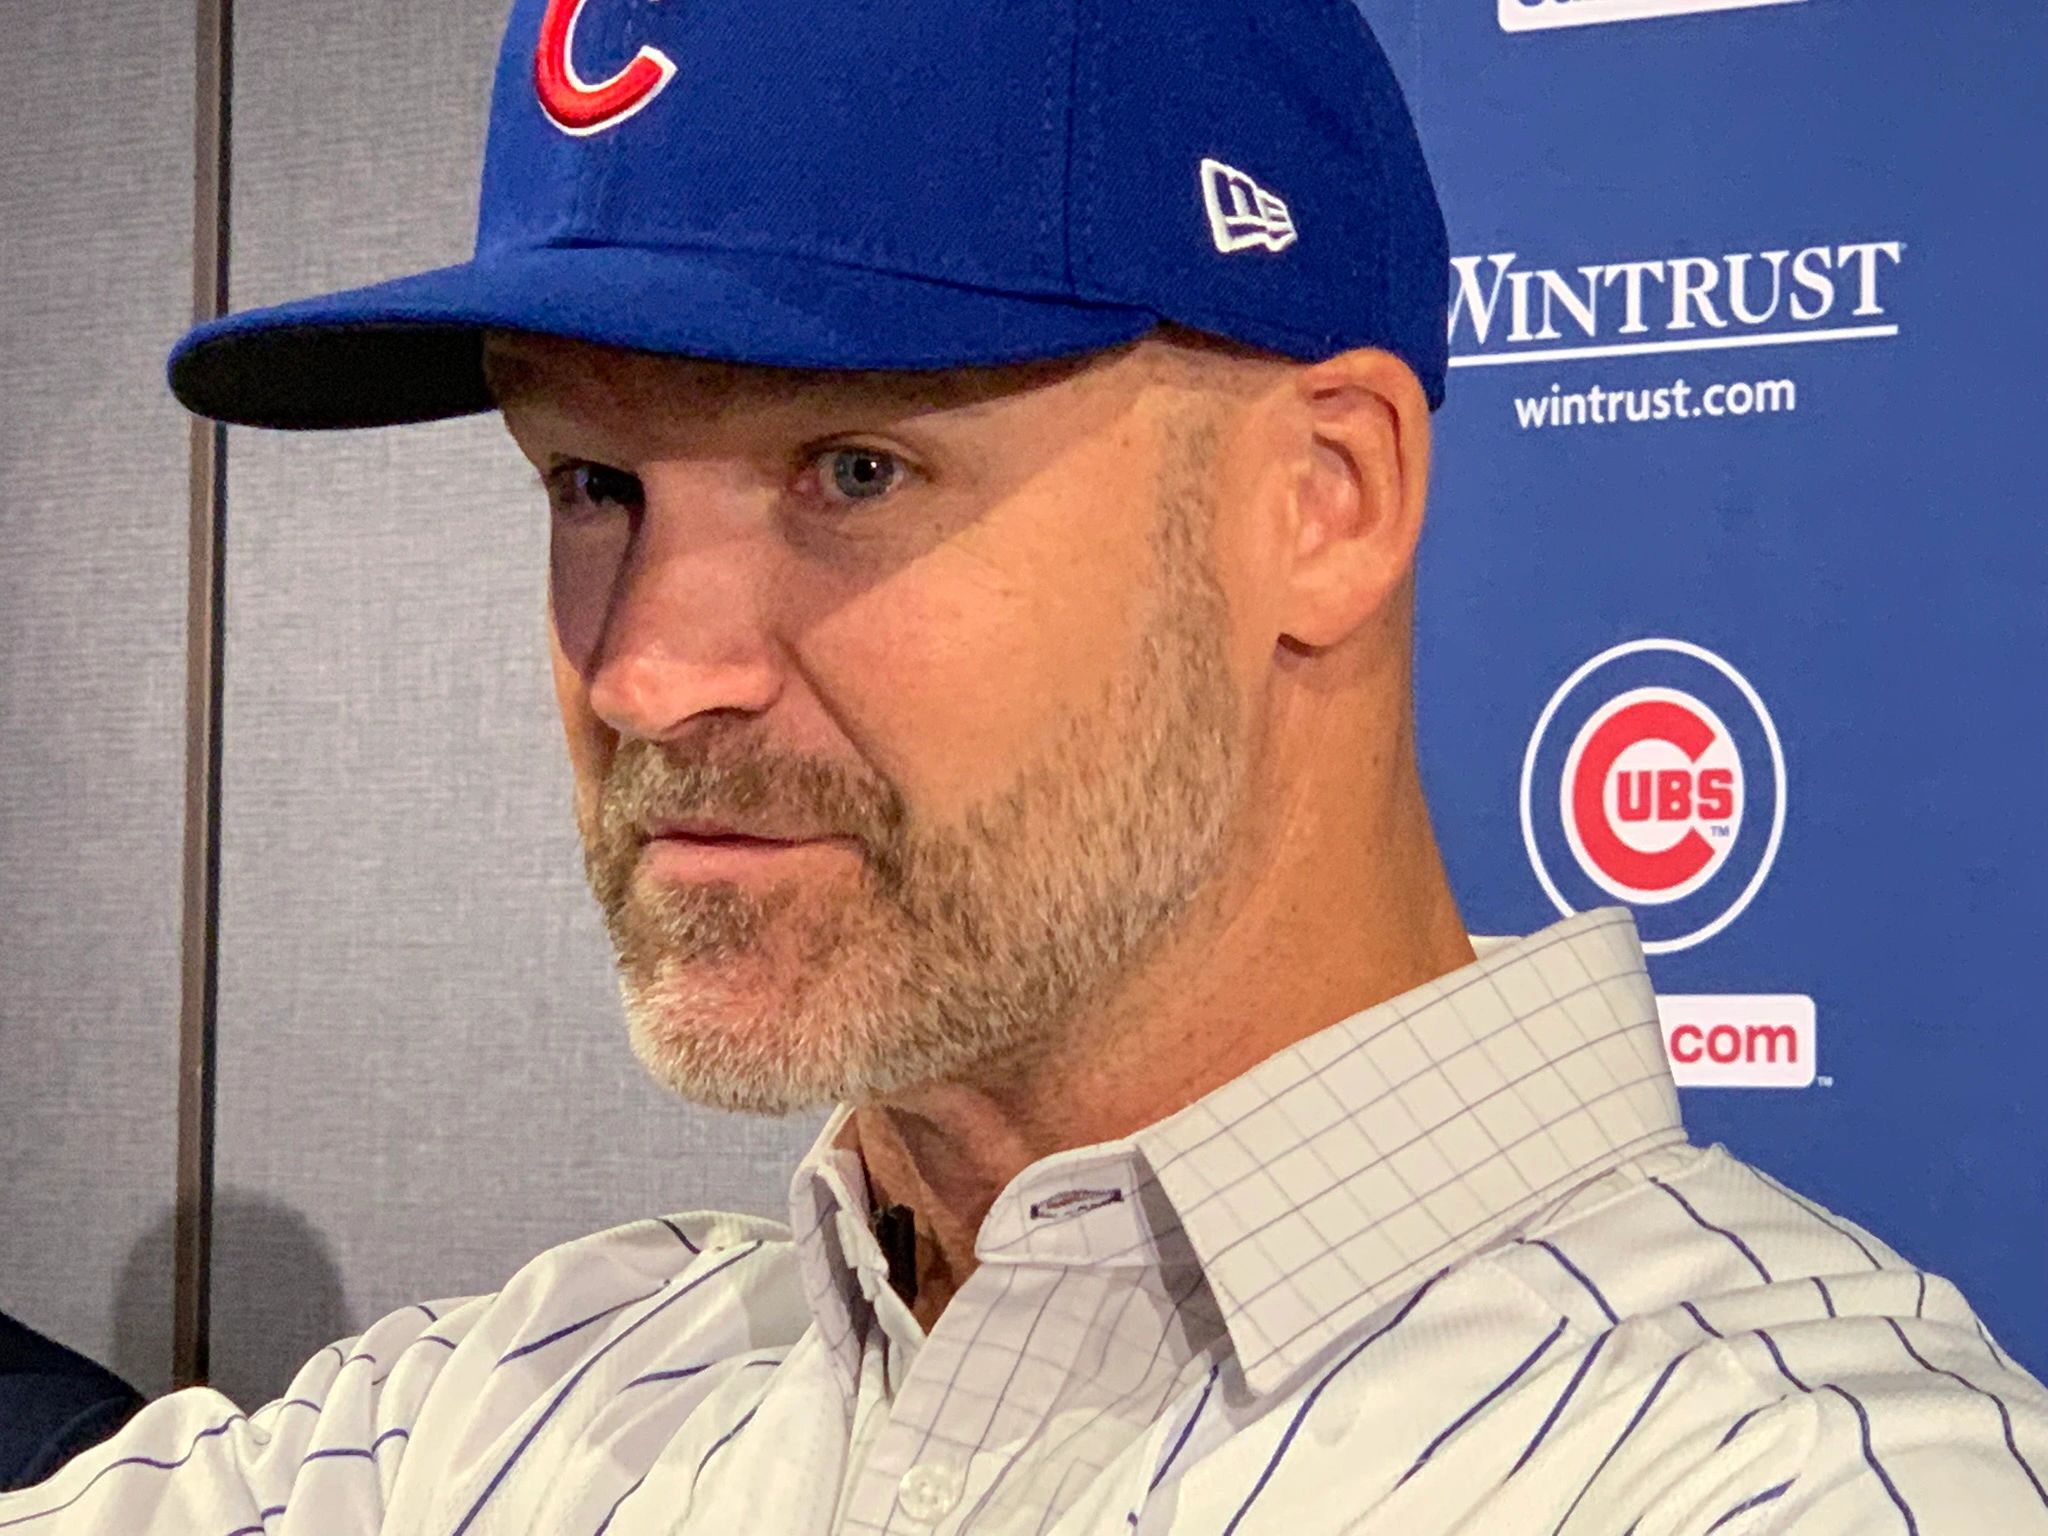 "{""blocks"":[{""key"":""r6ip"",""text"":""New Chicago Cubs manager David Ross sits down with Peggy to talk about managing his friends and his overblown ""Grandpa Rossy"" nice guy image.  EPISODE COMING MID NOVEMBER"",""type"":""unstyled"",""depth"":0,""inlineStyleRanges"":[],""entityRanges"":[],""data"":{}}],""entityMap"":{}}"